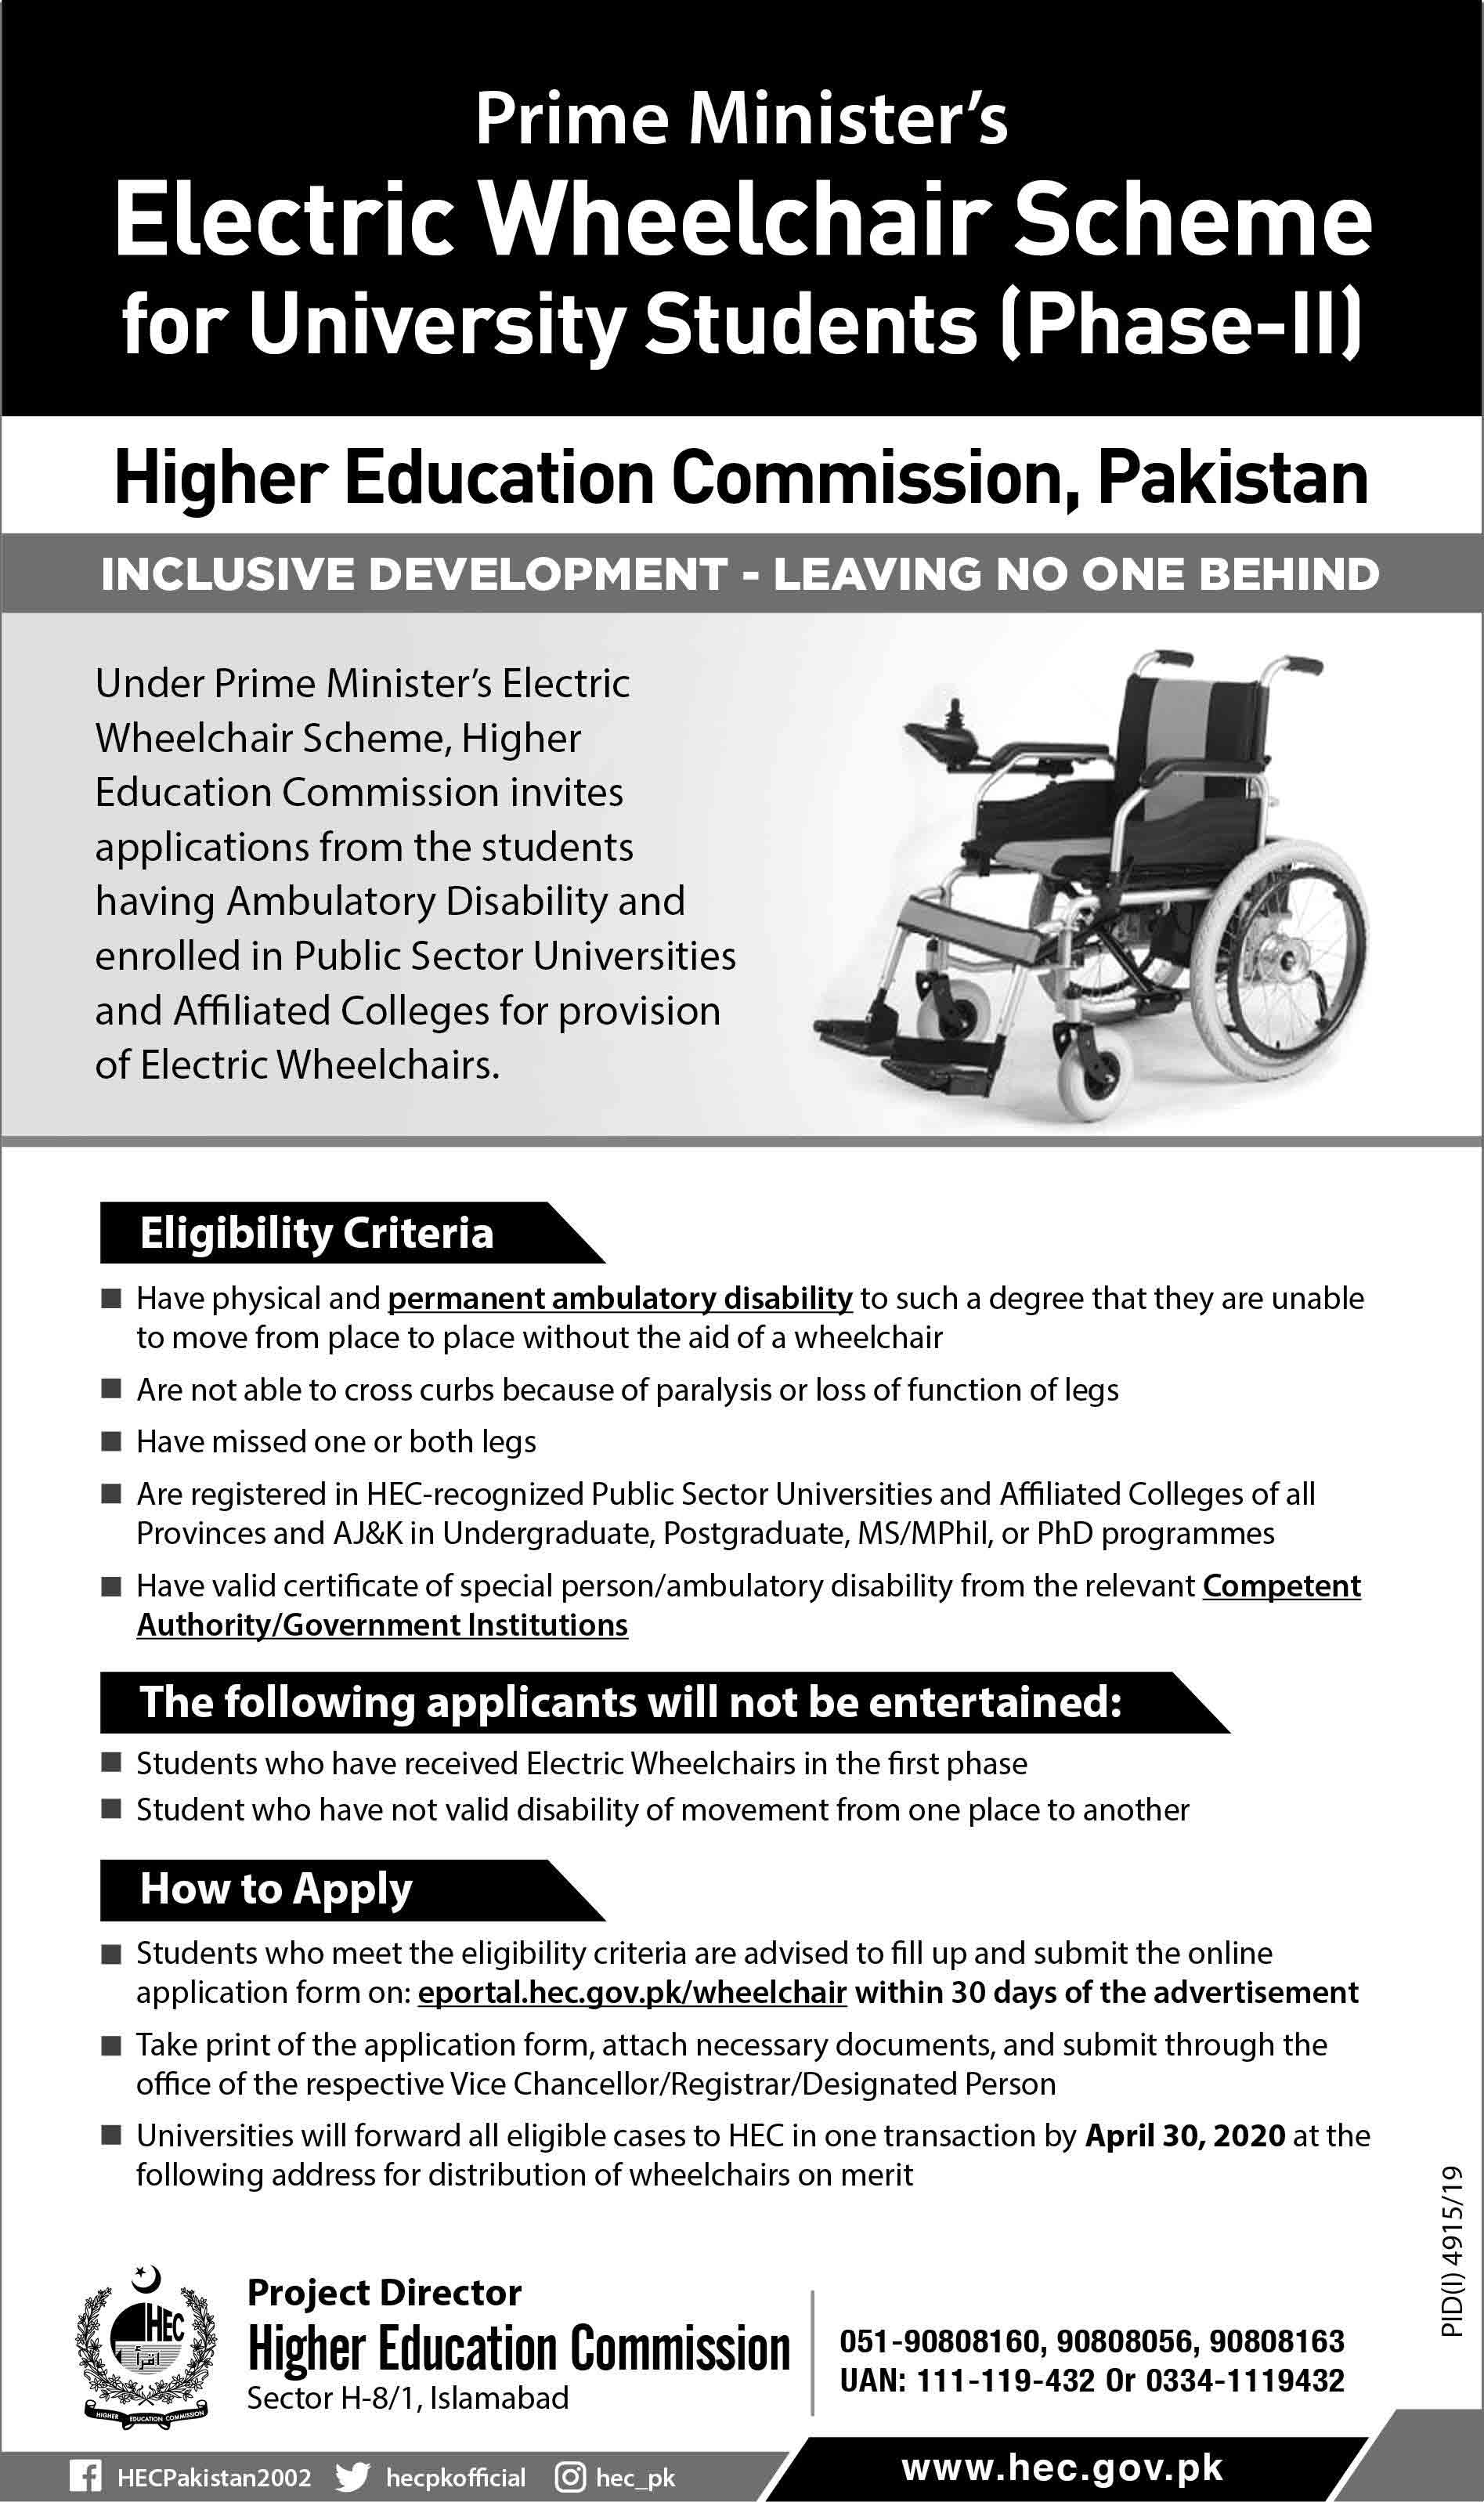 Prime Minister's Electric Wheelchair Scheme English